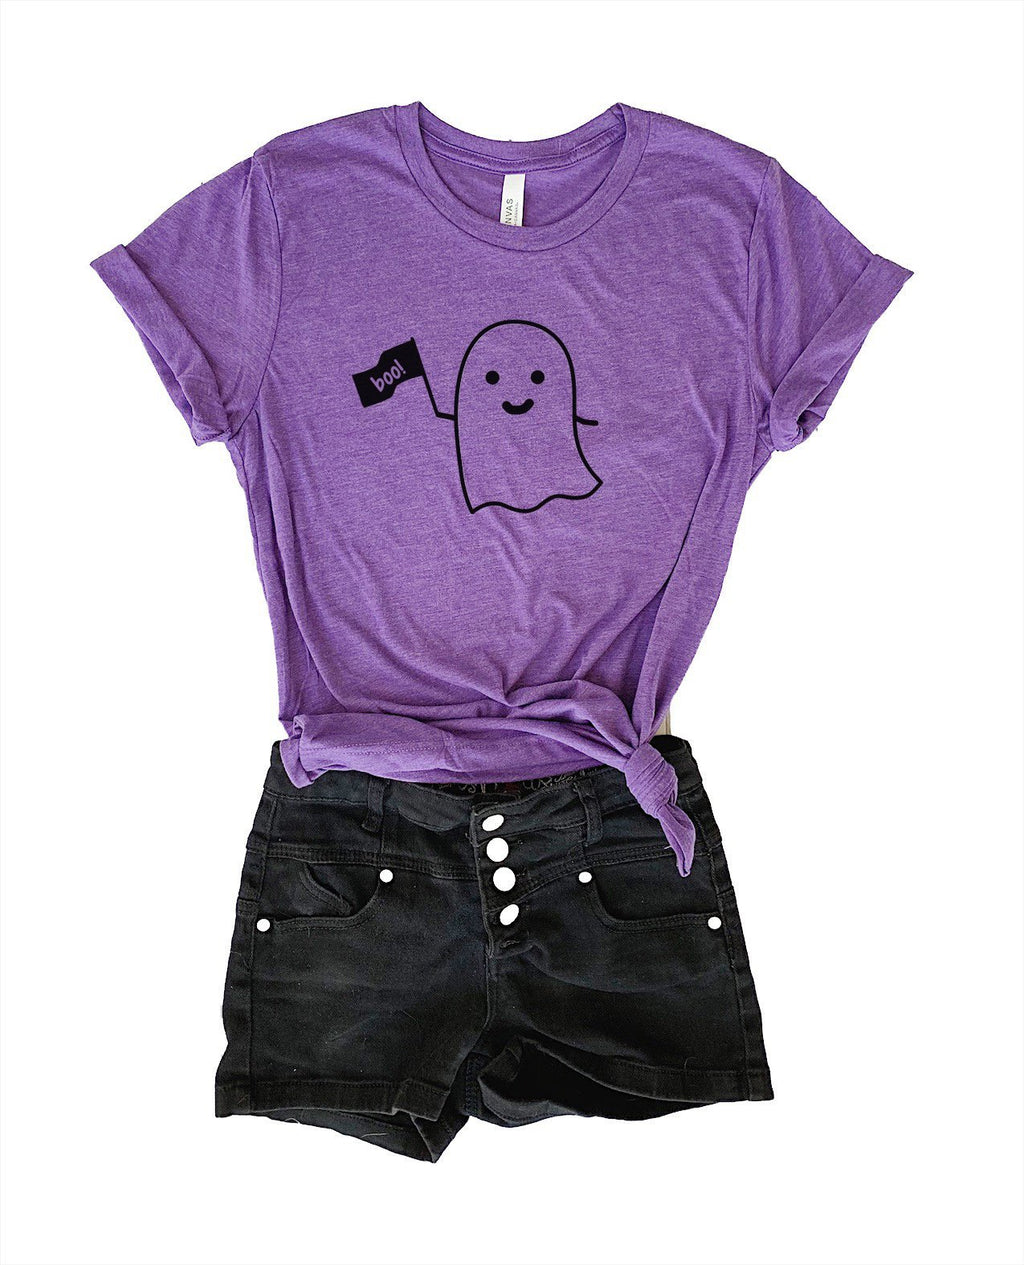 Show your love for ghosts this Halloween in this super soft Halloween tee! May your day be very spooky!